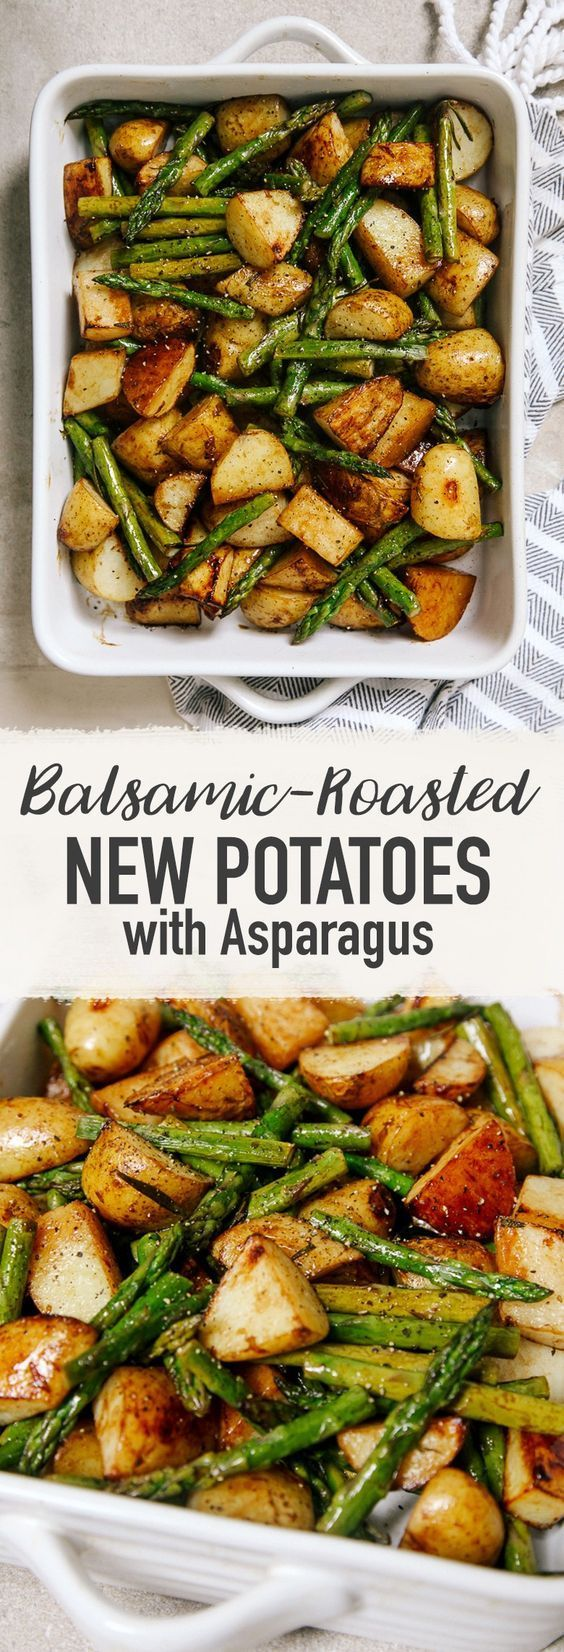 Try this simple, delicious side dish featuring seasonal asparagus and new potatoes with the subtle sweetness of balsamic vinegar.